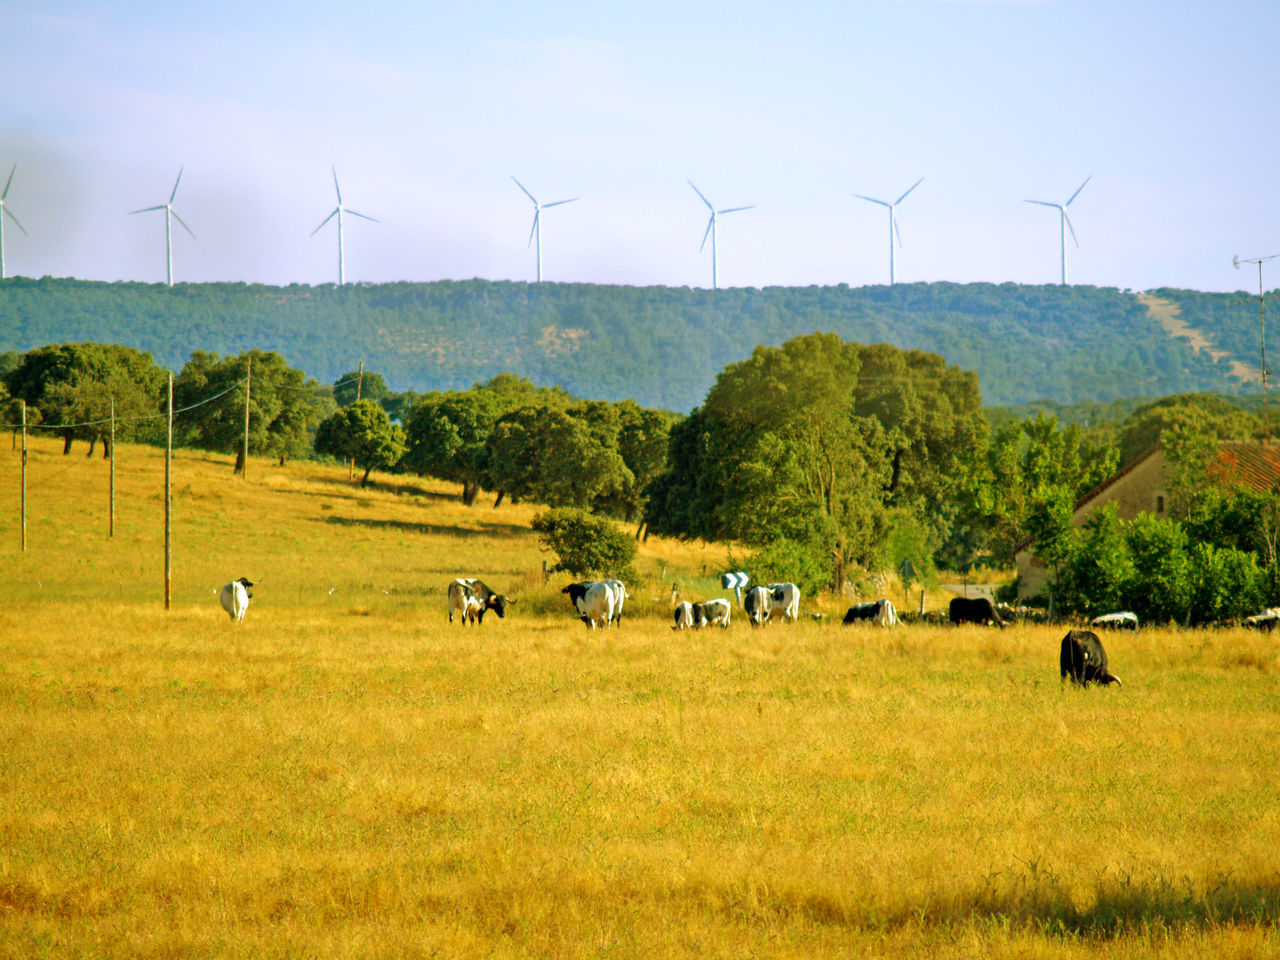 Agriculture Alternative Energy Animal Themes Bull Cow Cows Dehesa Environmental Conservation Field Fuel And Power Generation Landscape Large Group Of Animals Mammal Nature Nature No People Renewable Energy Rural Scene Sky Sustainable Resources Tree Wind Power Wind Turbine Windmill